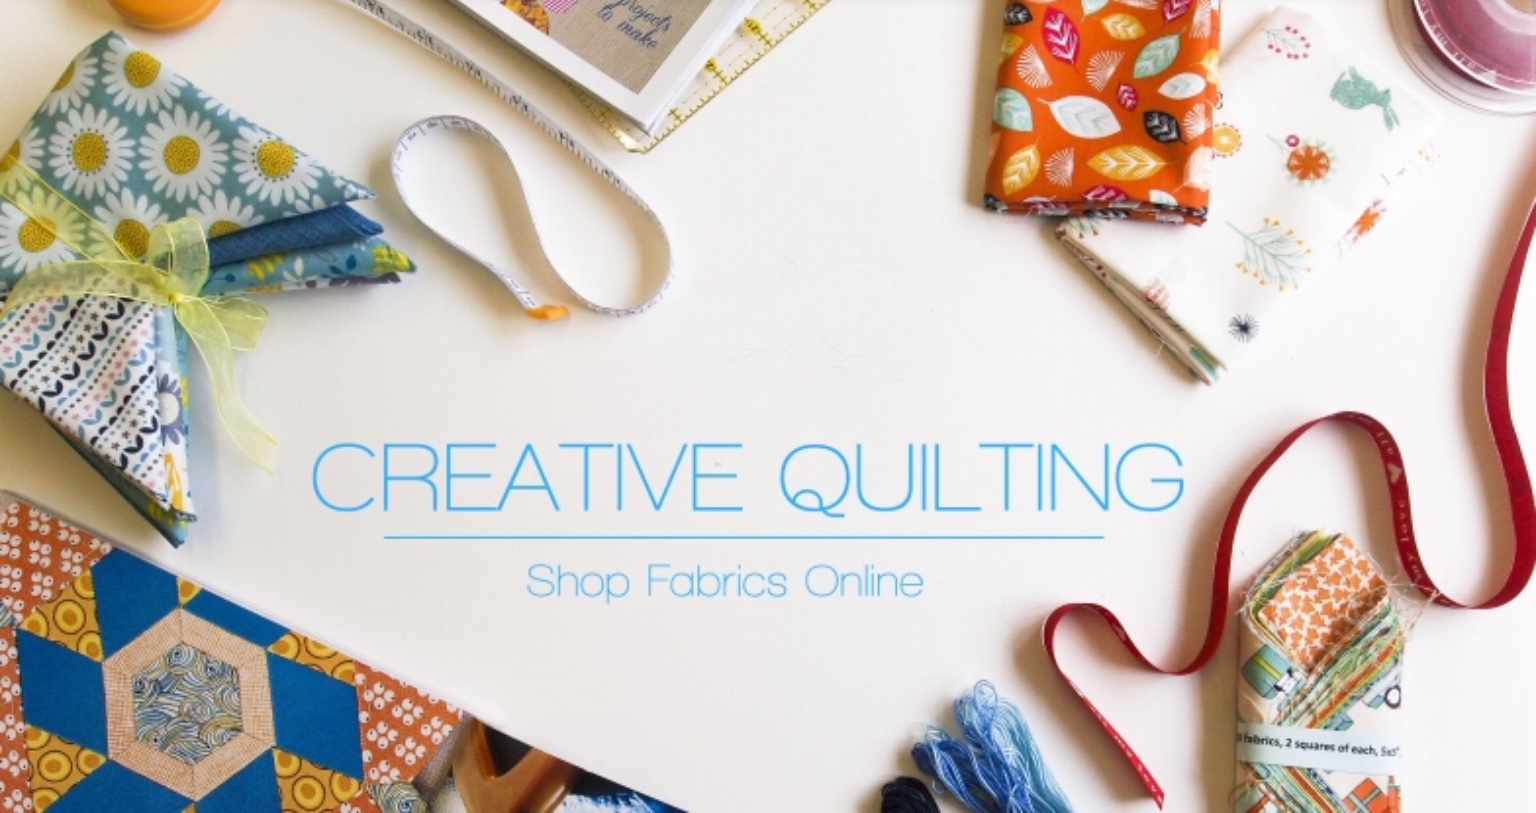 The  Creative Quilting  website landing page that baby-faced Lorna created